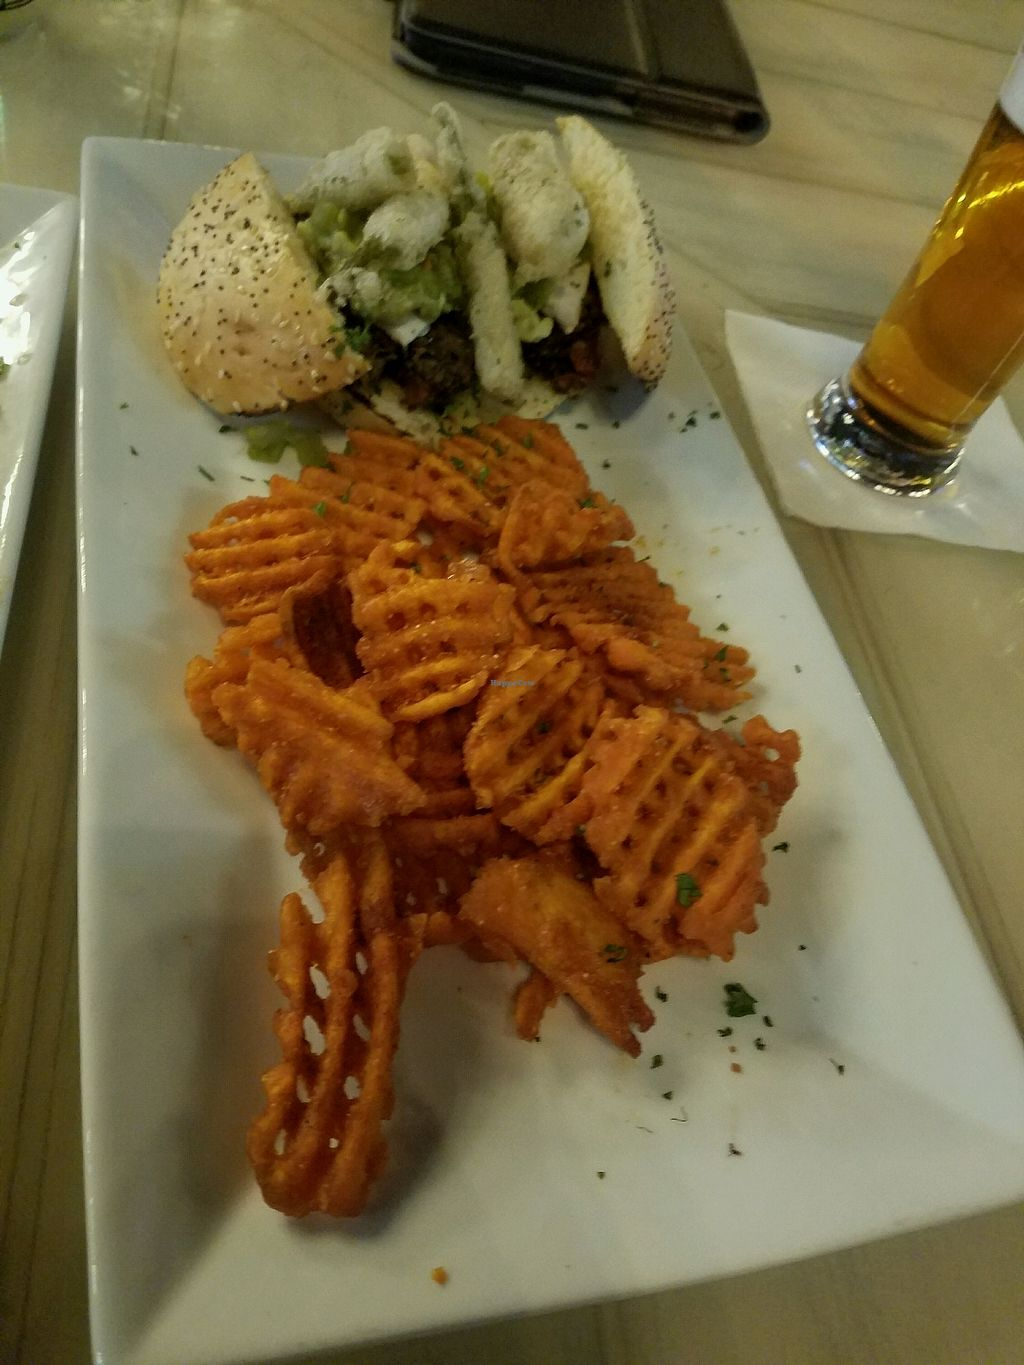 """Photo of Brixens  by <a href=""""/members/profile/MarisaD"""">MarisaD</a> <br/>Triple Green Chili Sliders (vegan) <br/> December 17, 2017  - <a href='/contact/abuse/image/103085/336505'>Report</a>"""